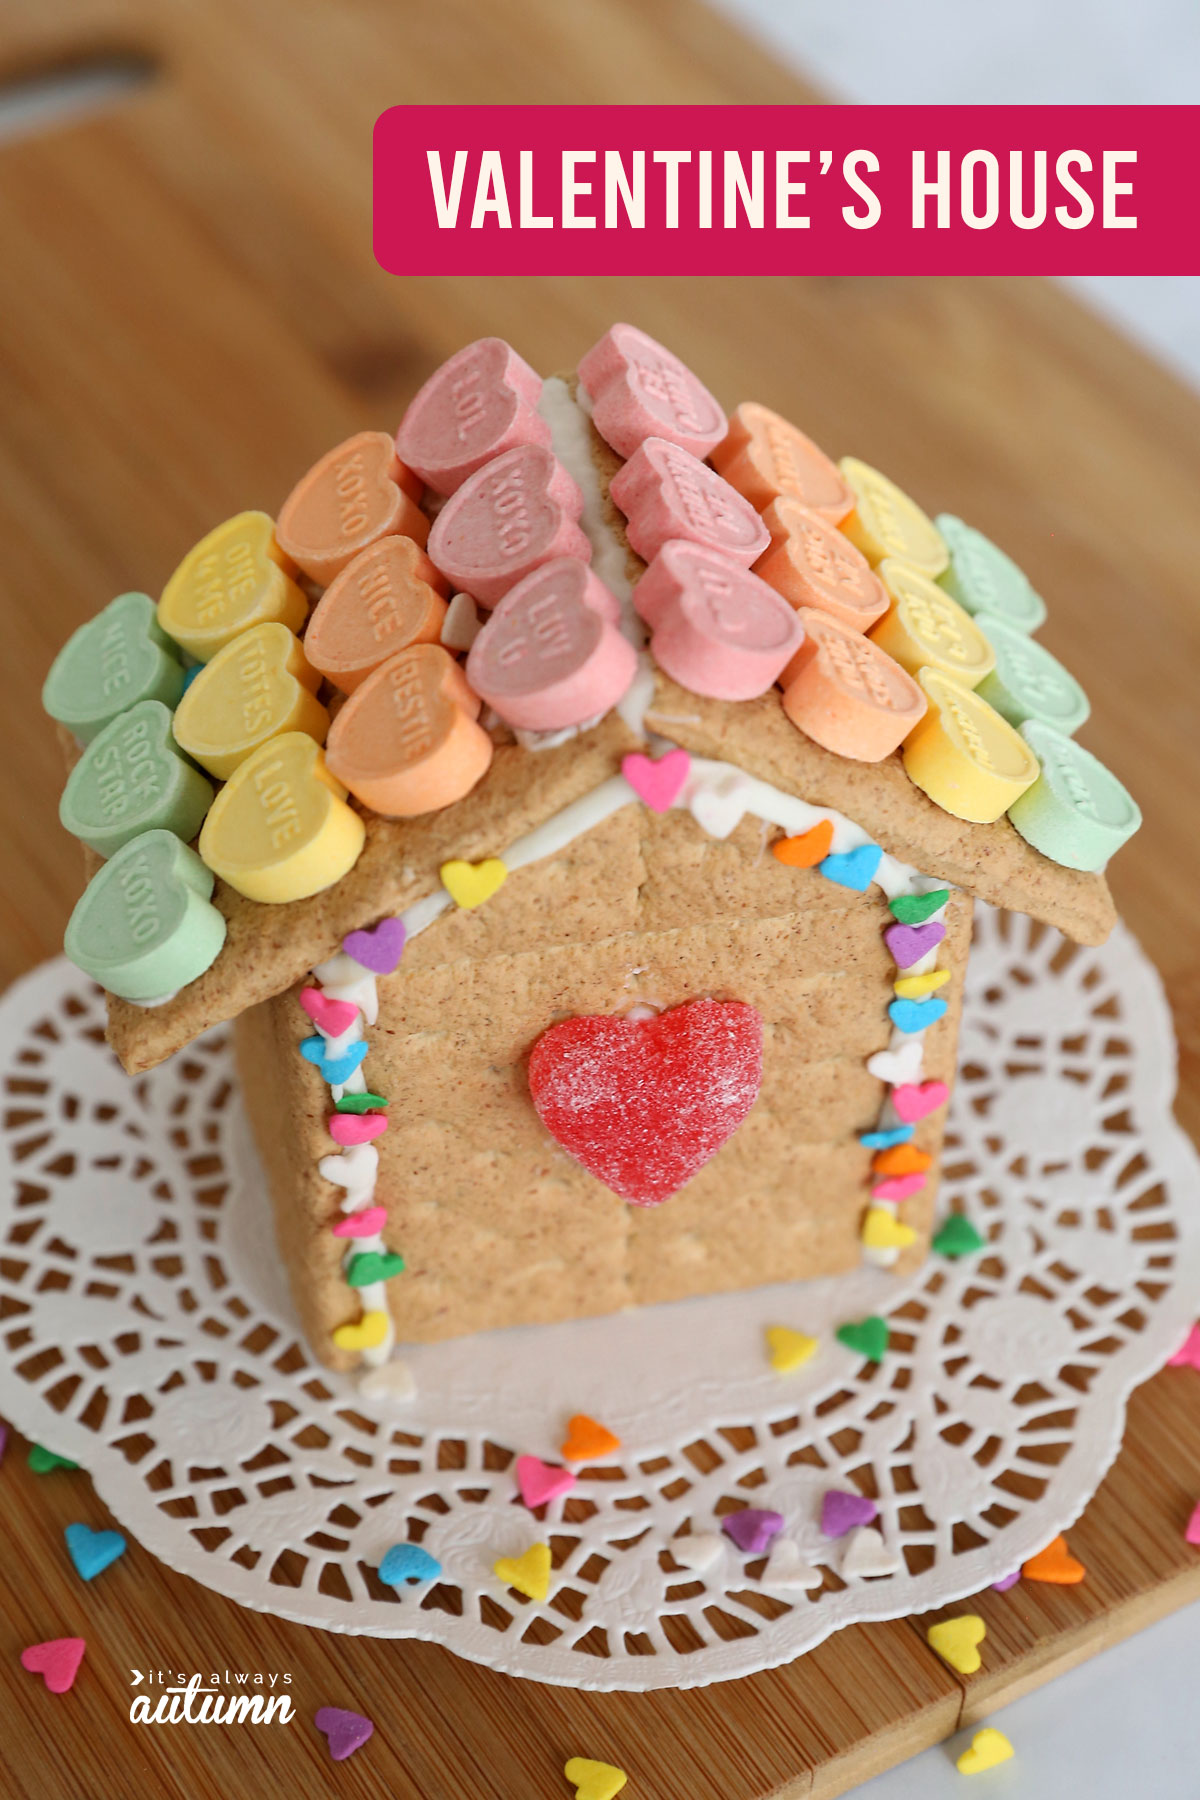 Valentine's Day gingerbread house made from graham crackers decorated with candy hearts